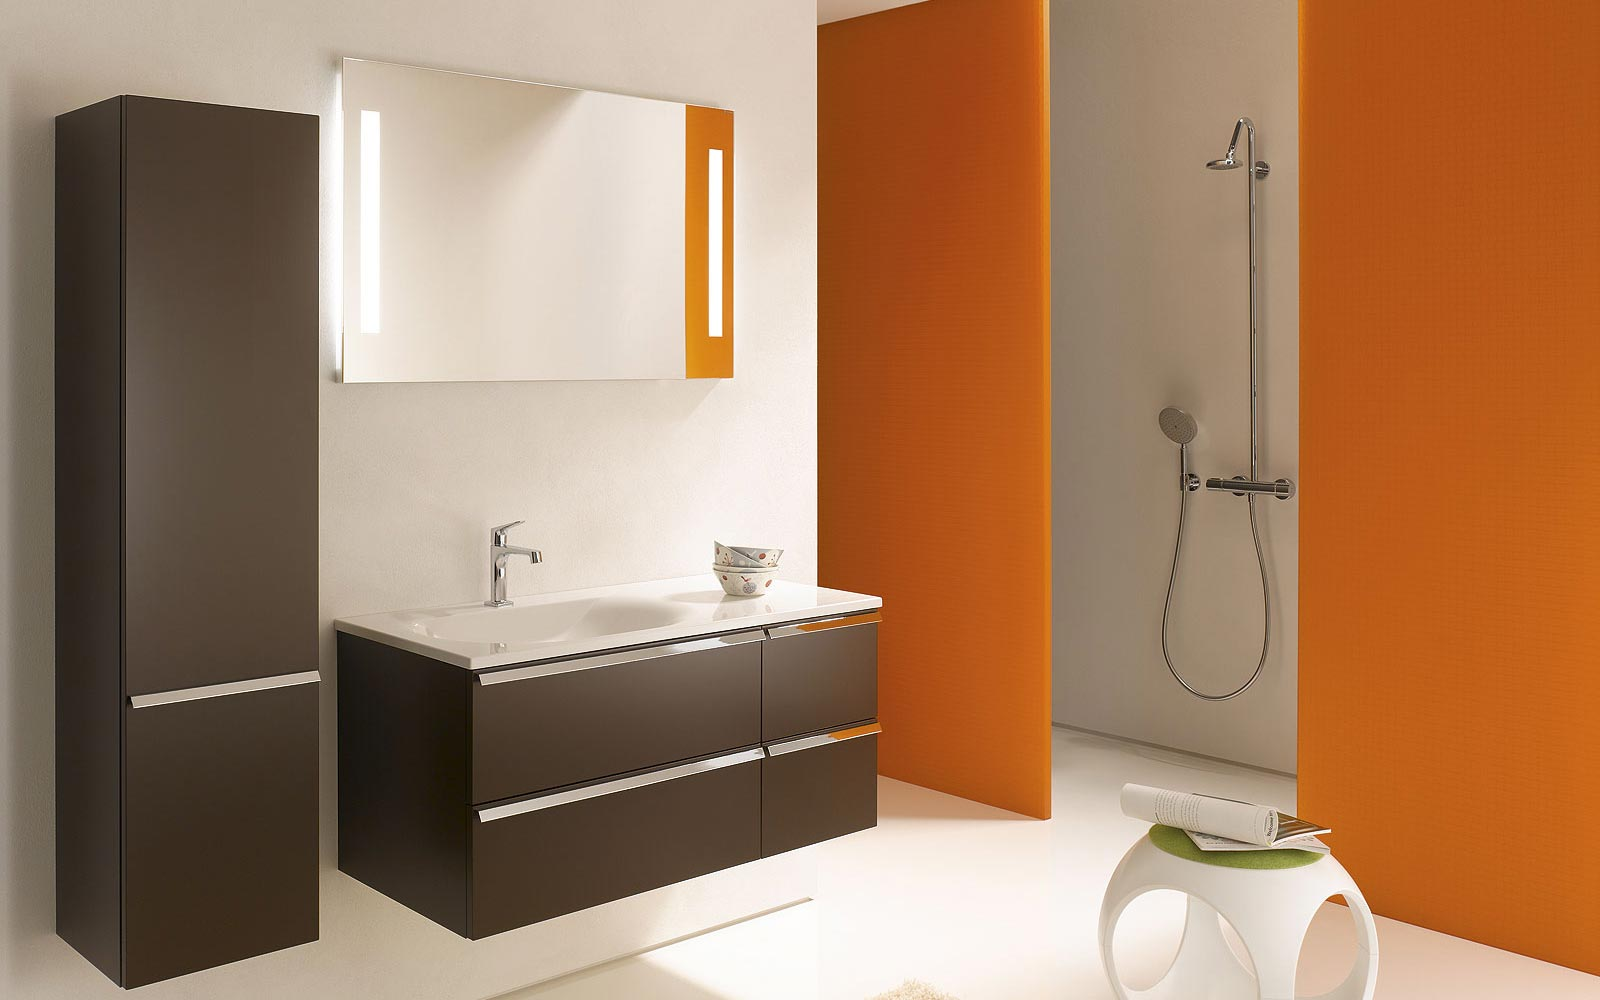 accessoires salle de bain couleur orange. Black Bedroom Furniture Sets. Home Design Ideas